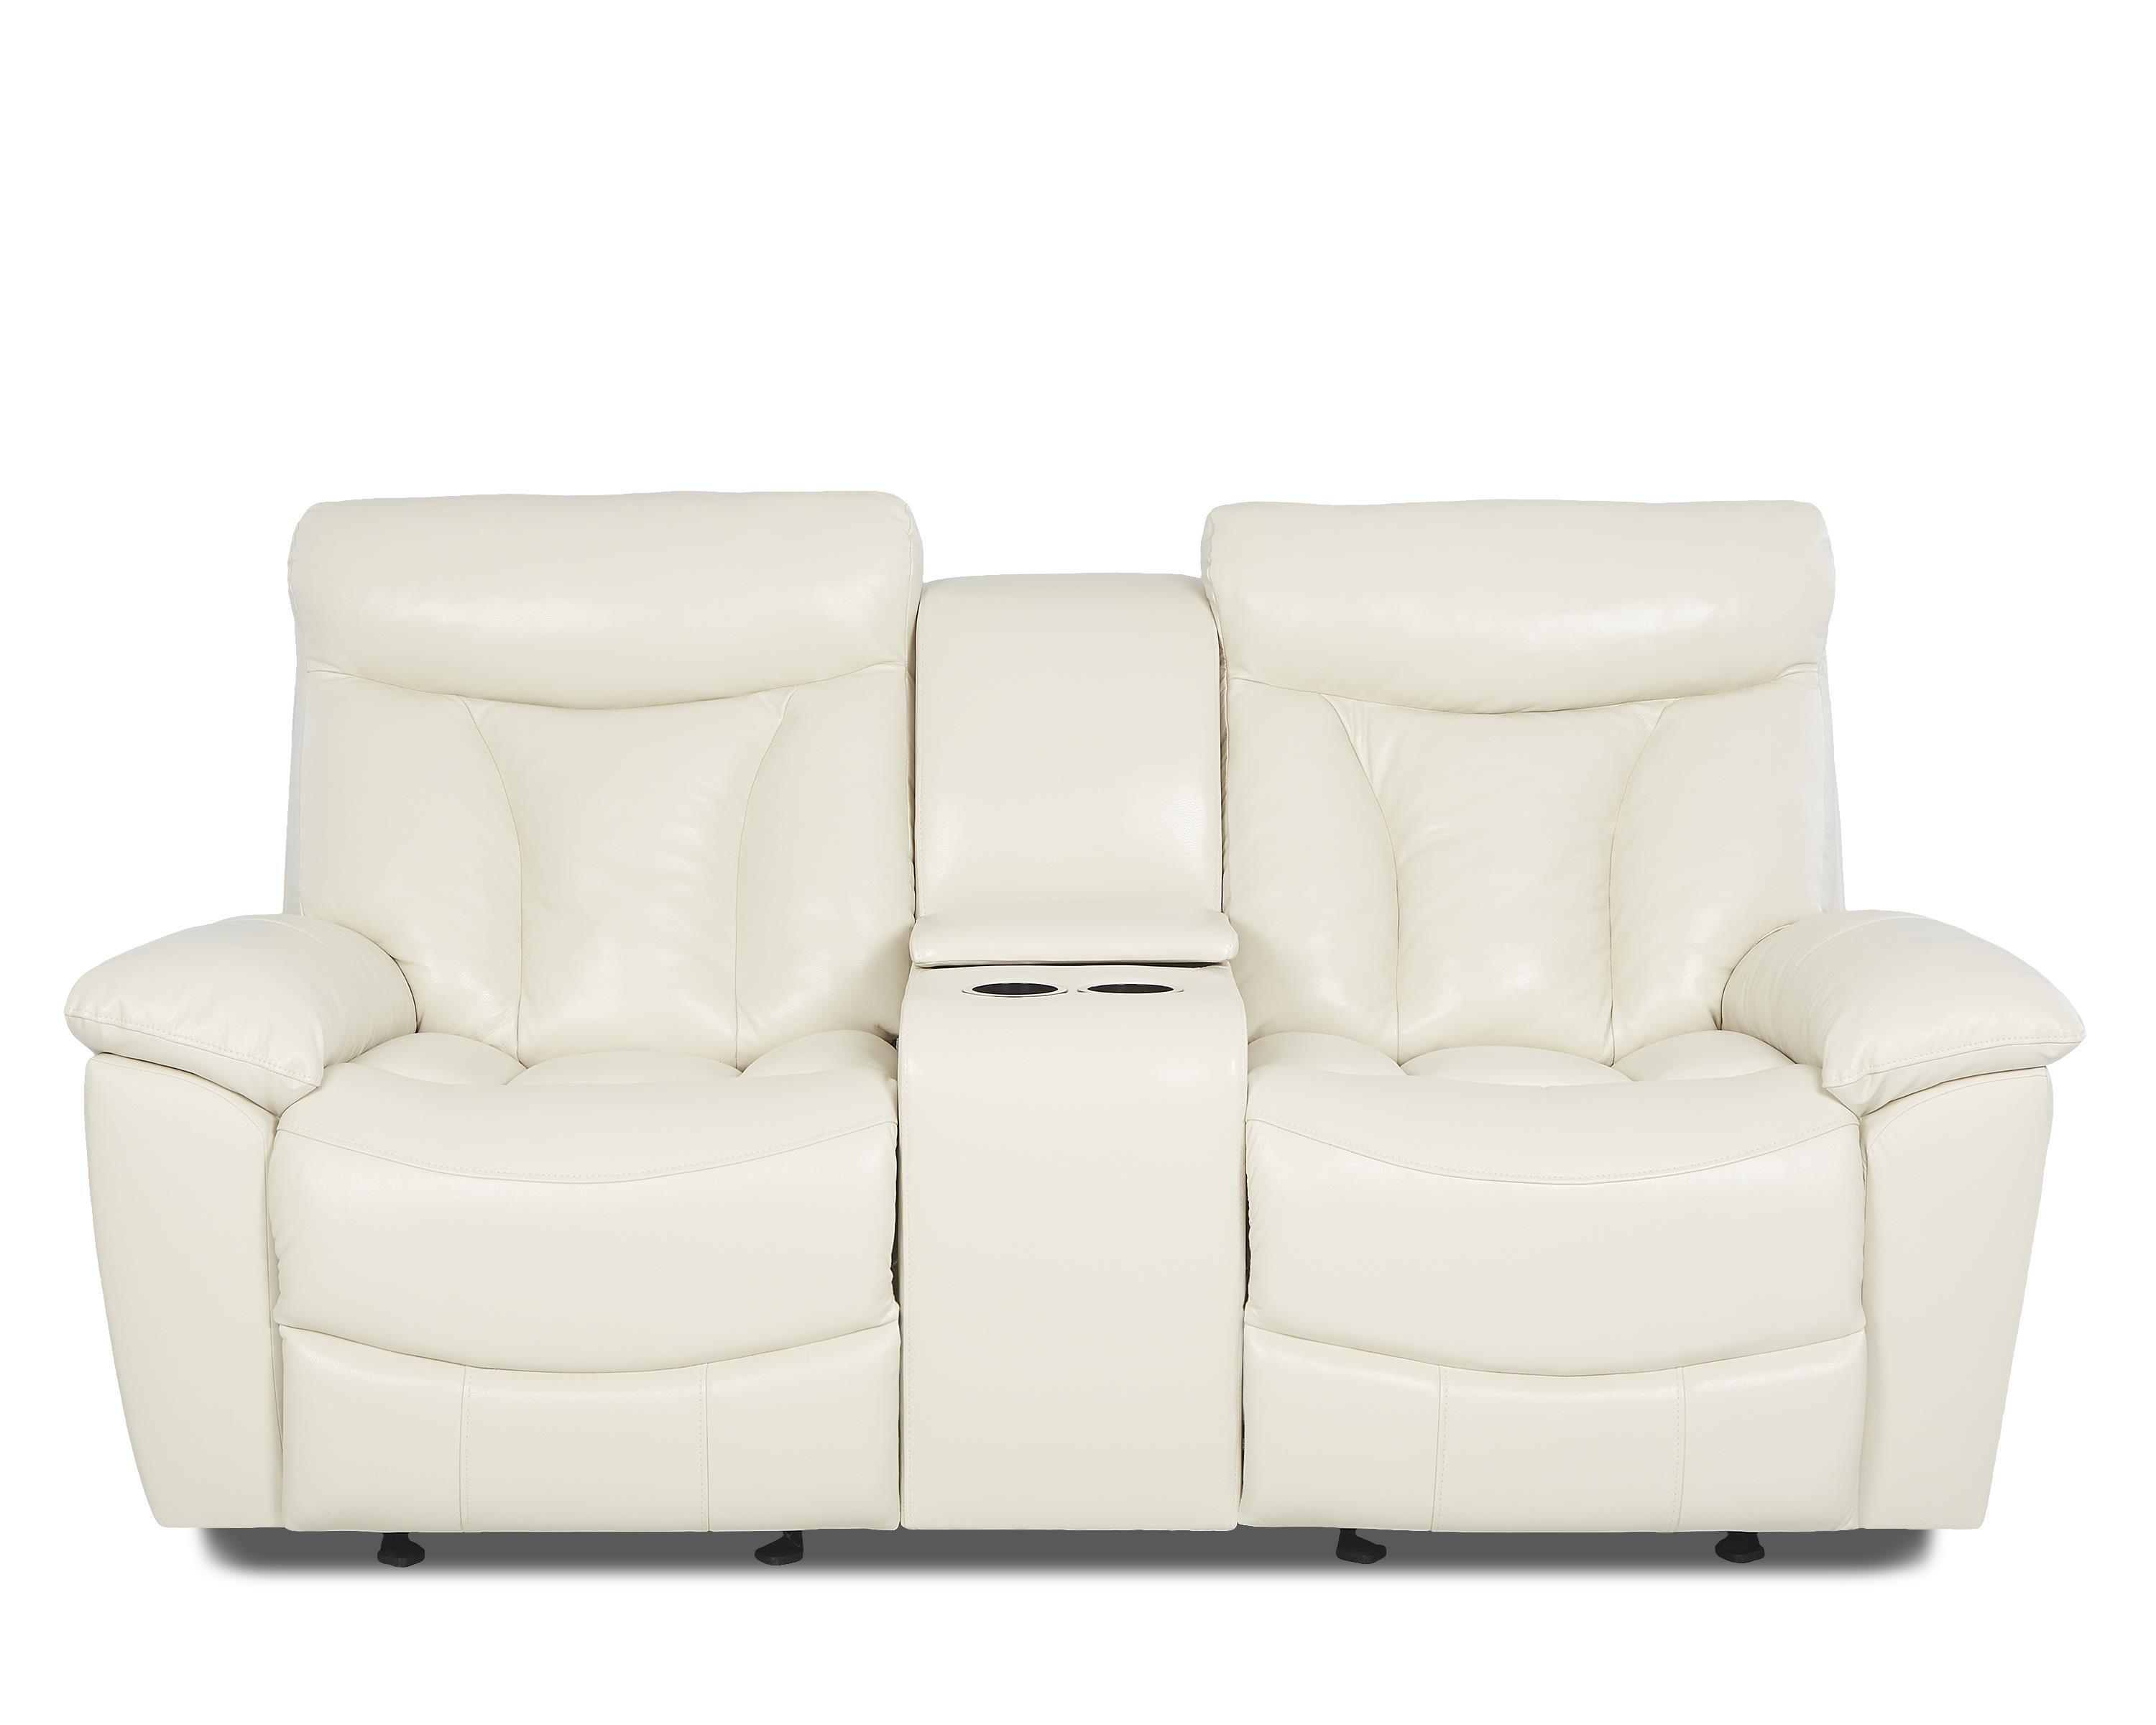 Deluxe Reclining Love Seat by Klaussner at Northeast Factory Direct